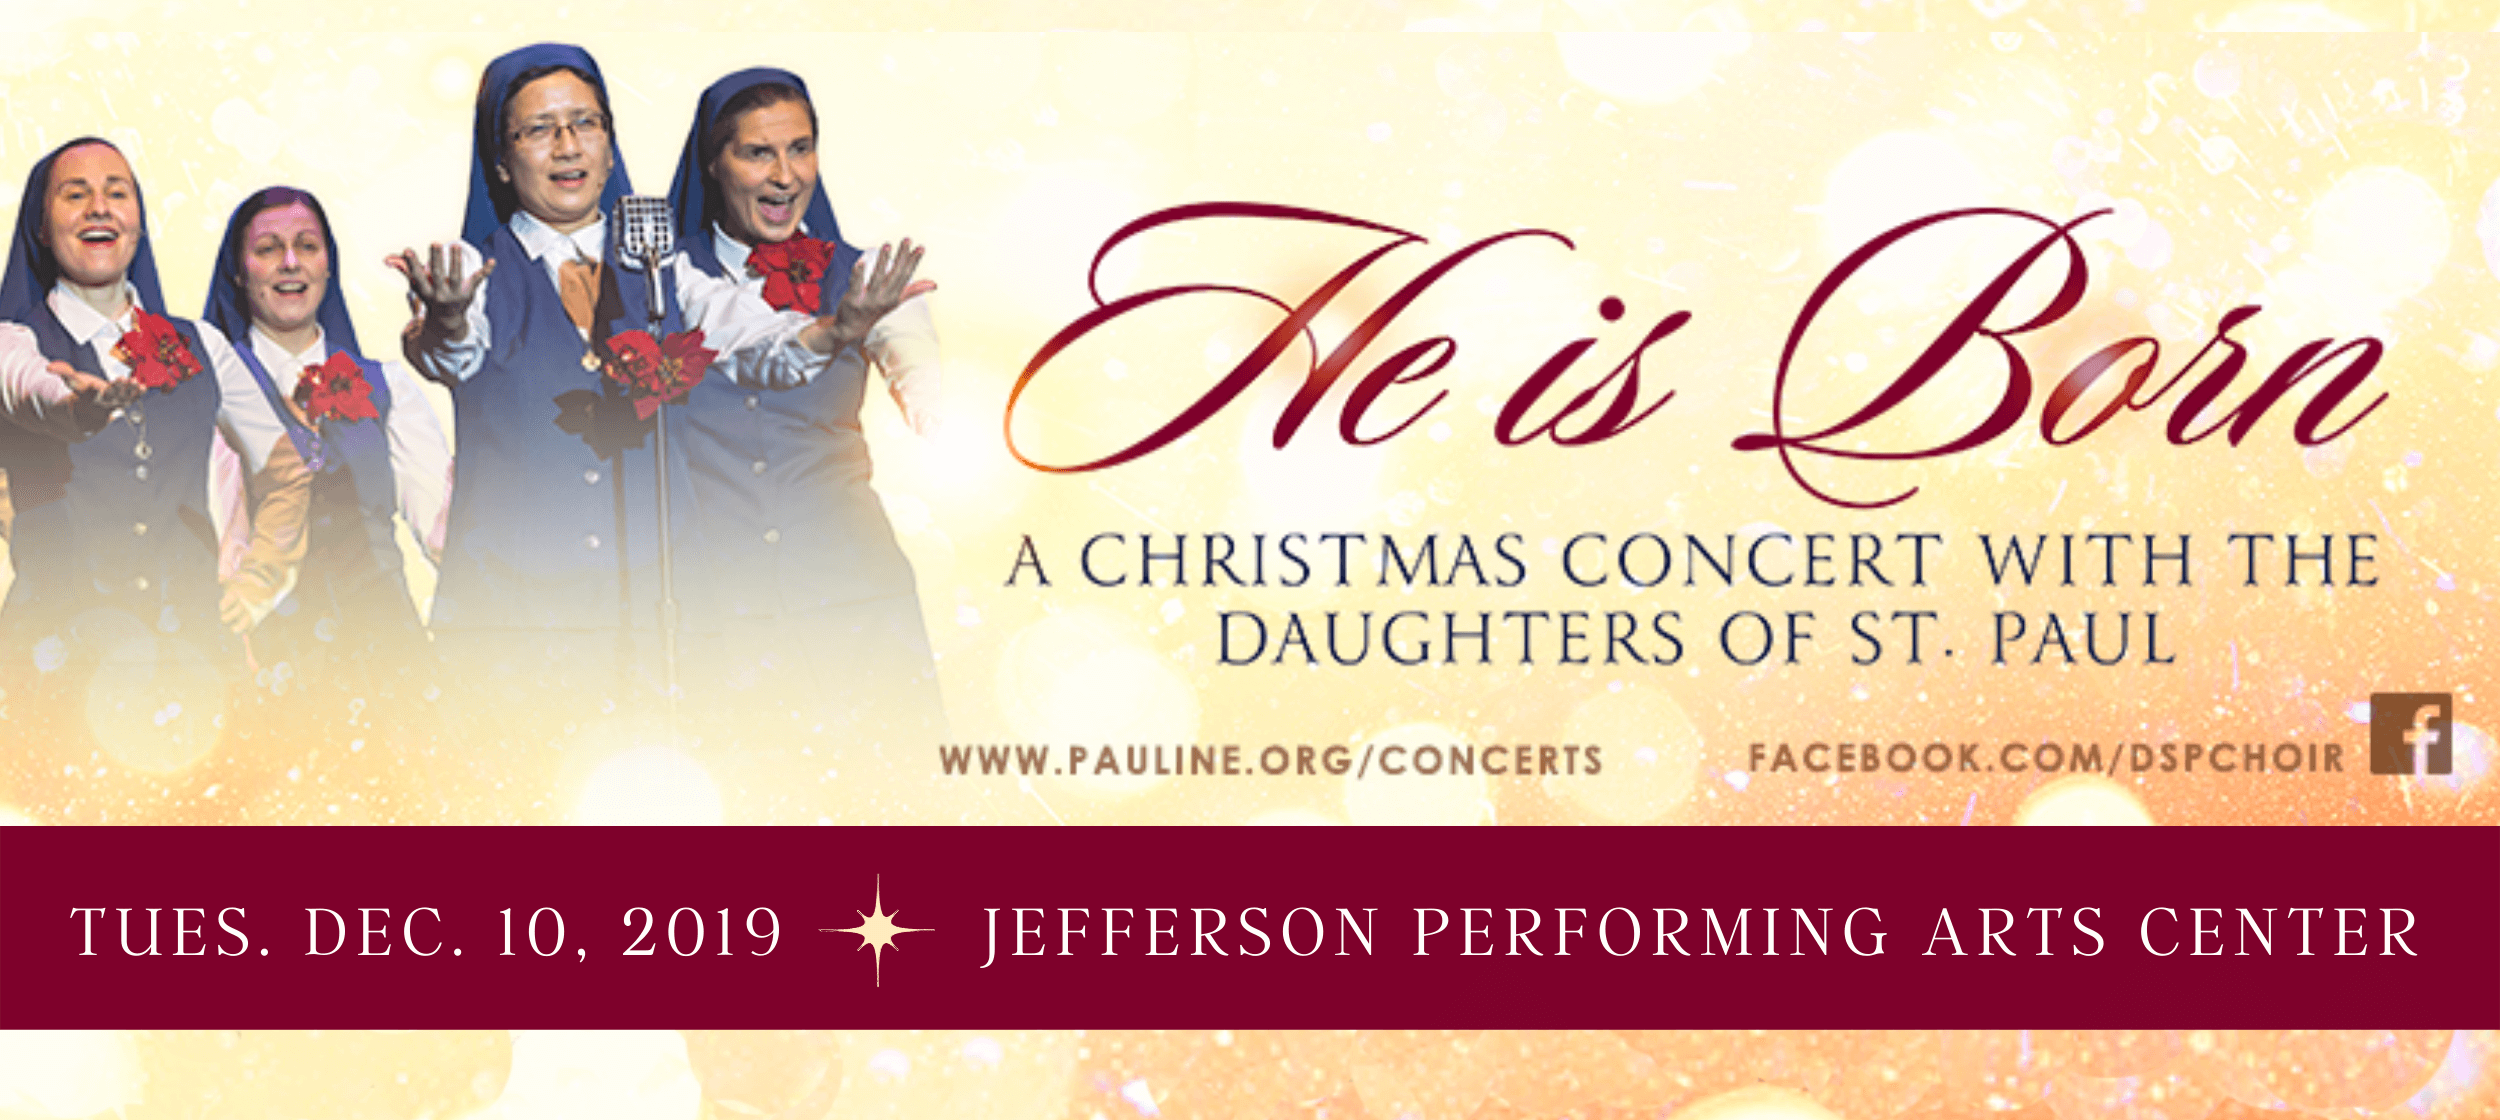 He Is Born: A Christmas Concert with the Daughters of St. Paul